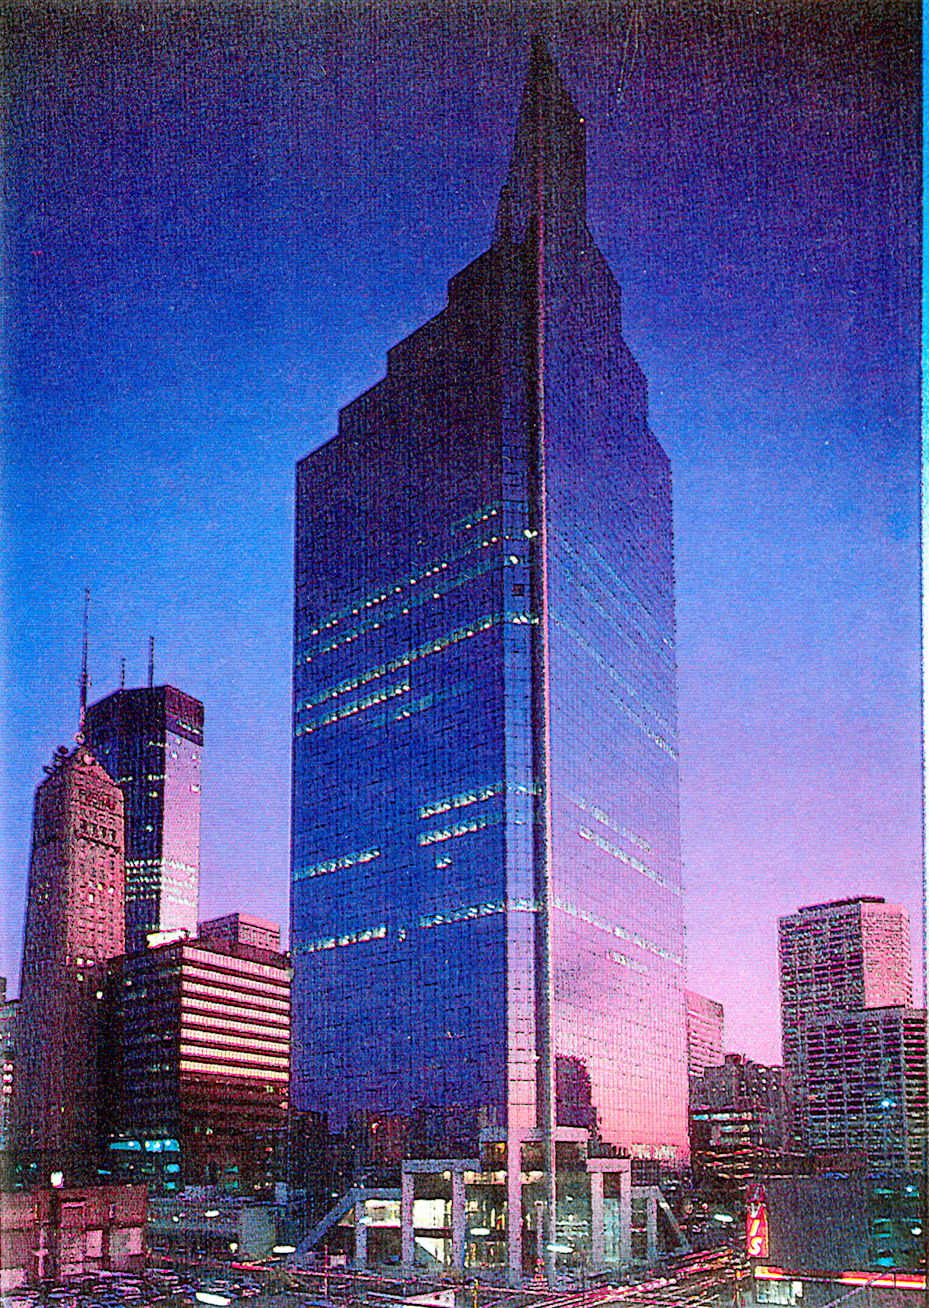 Piper Jaffray tower photo from 1980's shows entrance detail at street level